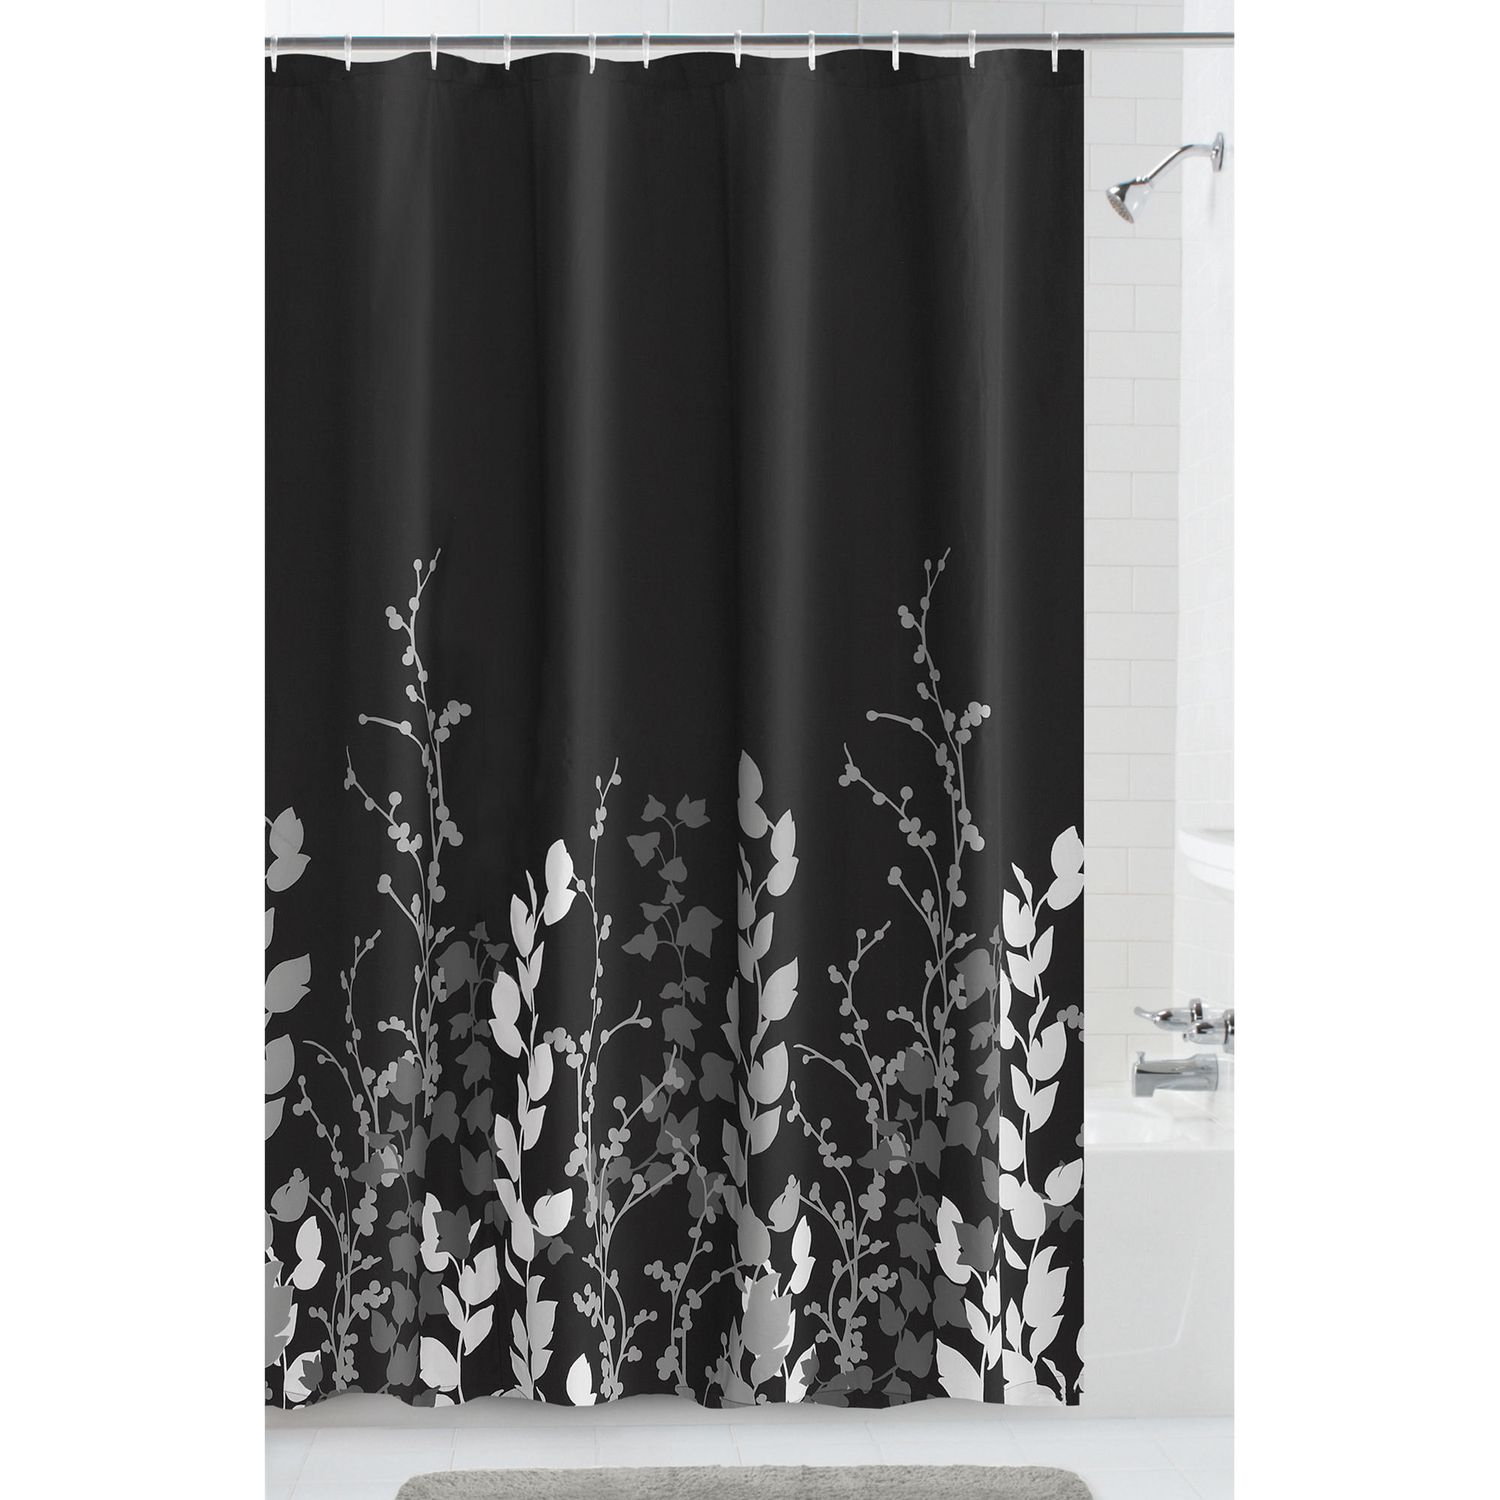 to shower expand seascape curtains x click p curtain